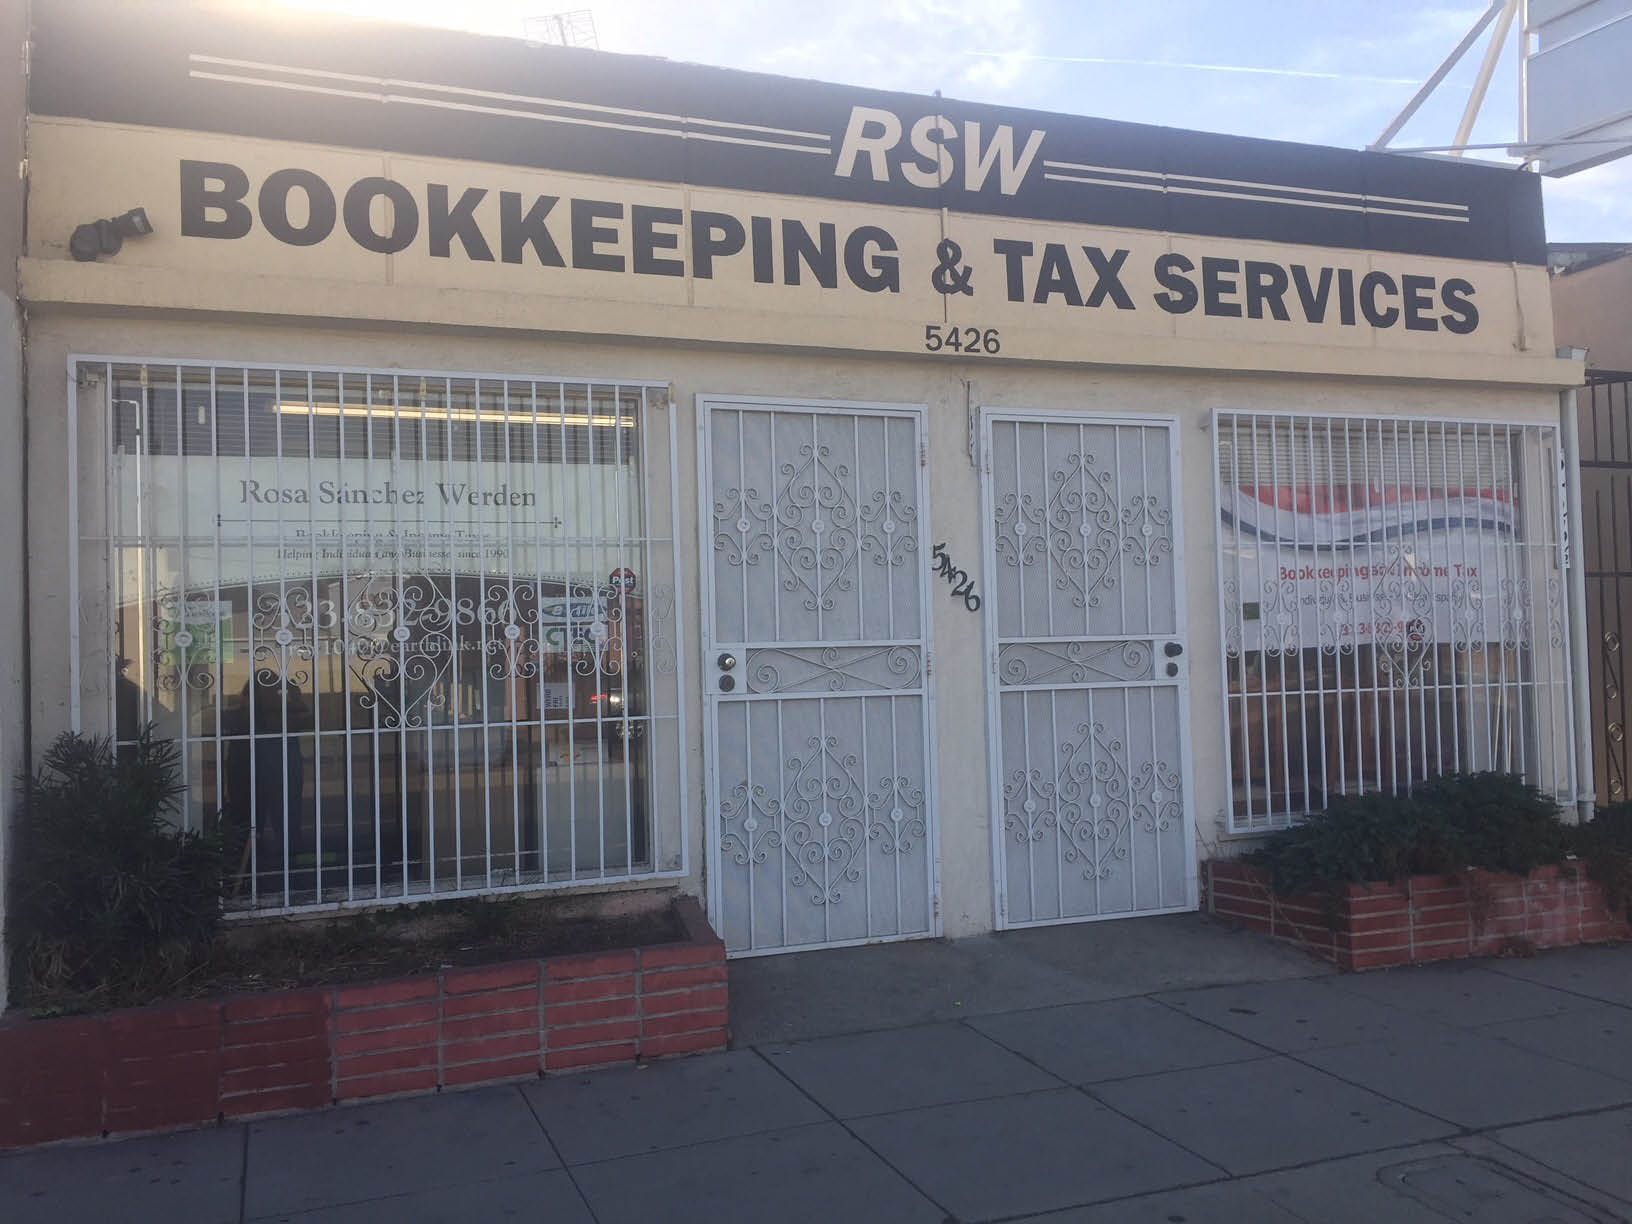 RSW Bookkeeping Tax Service building exterior in Los Angeles